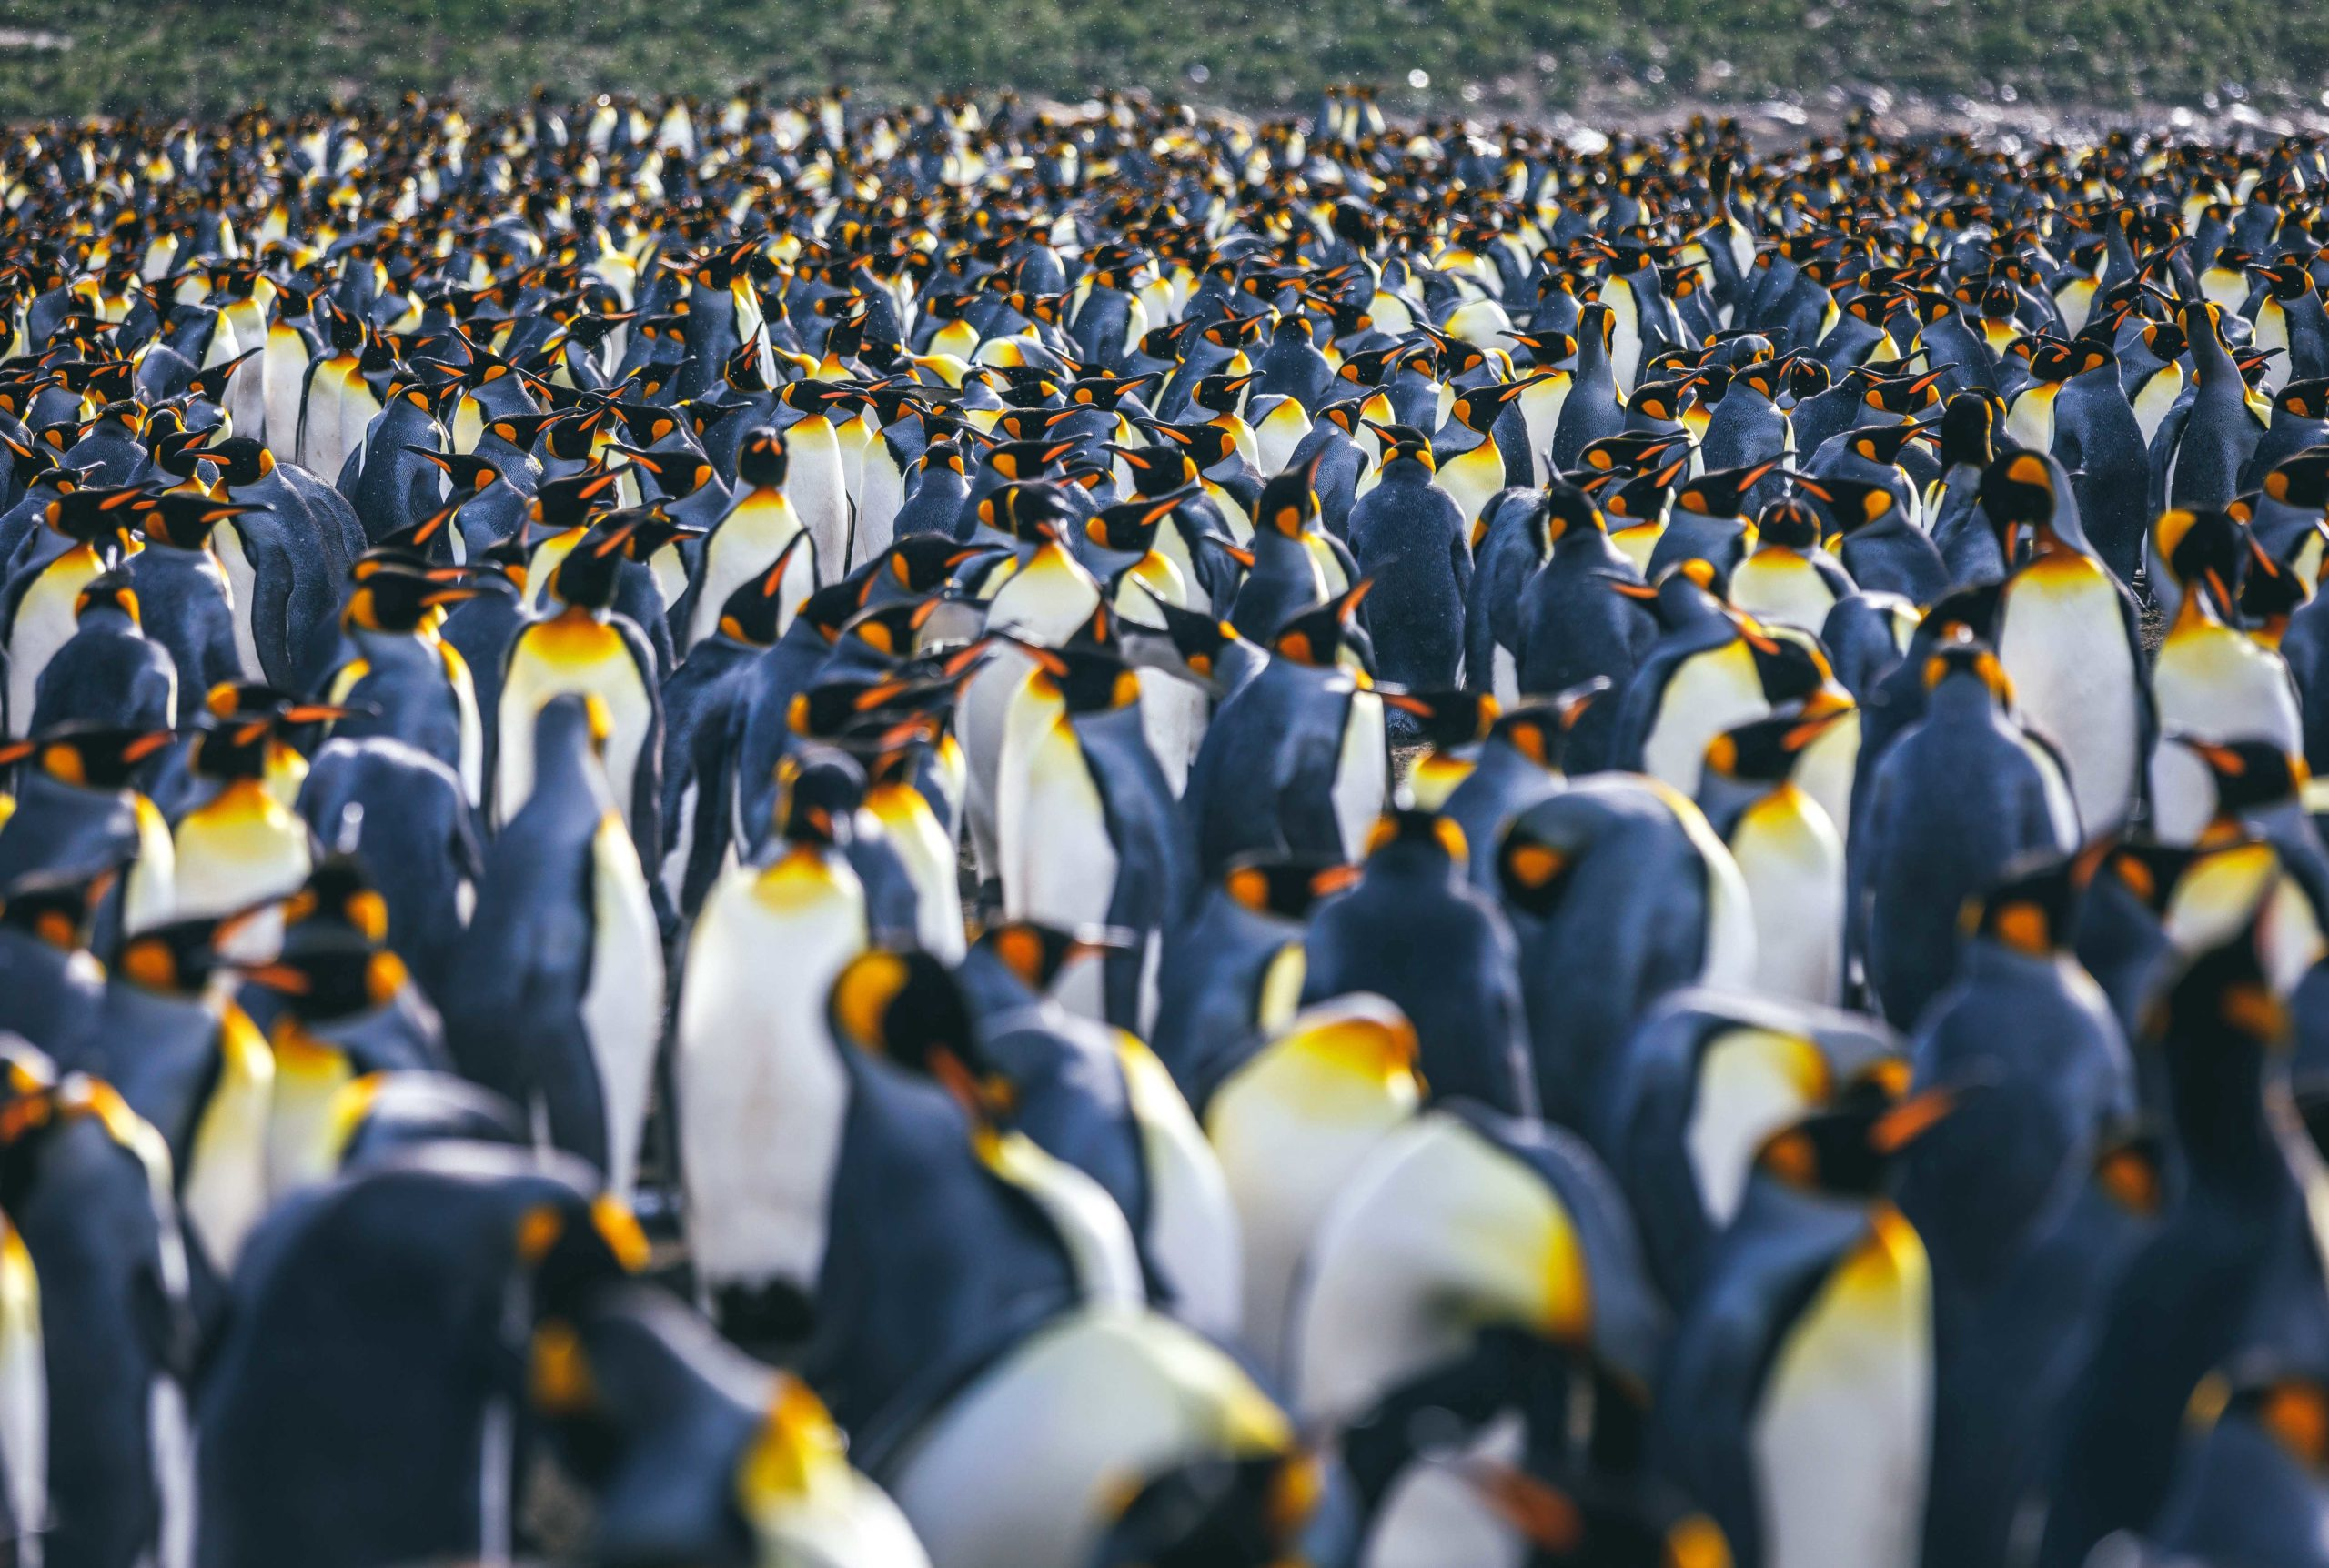 close up of King penguin colony packed together